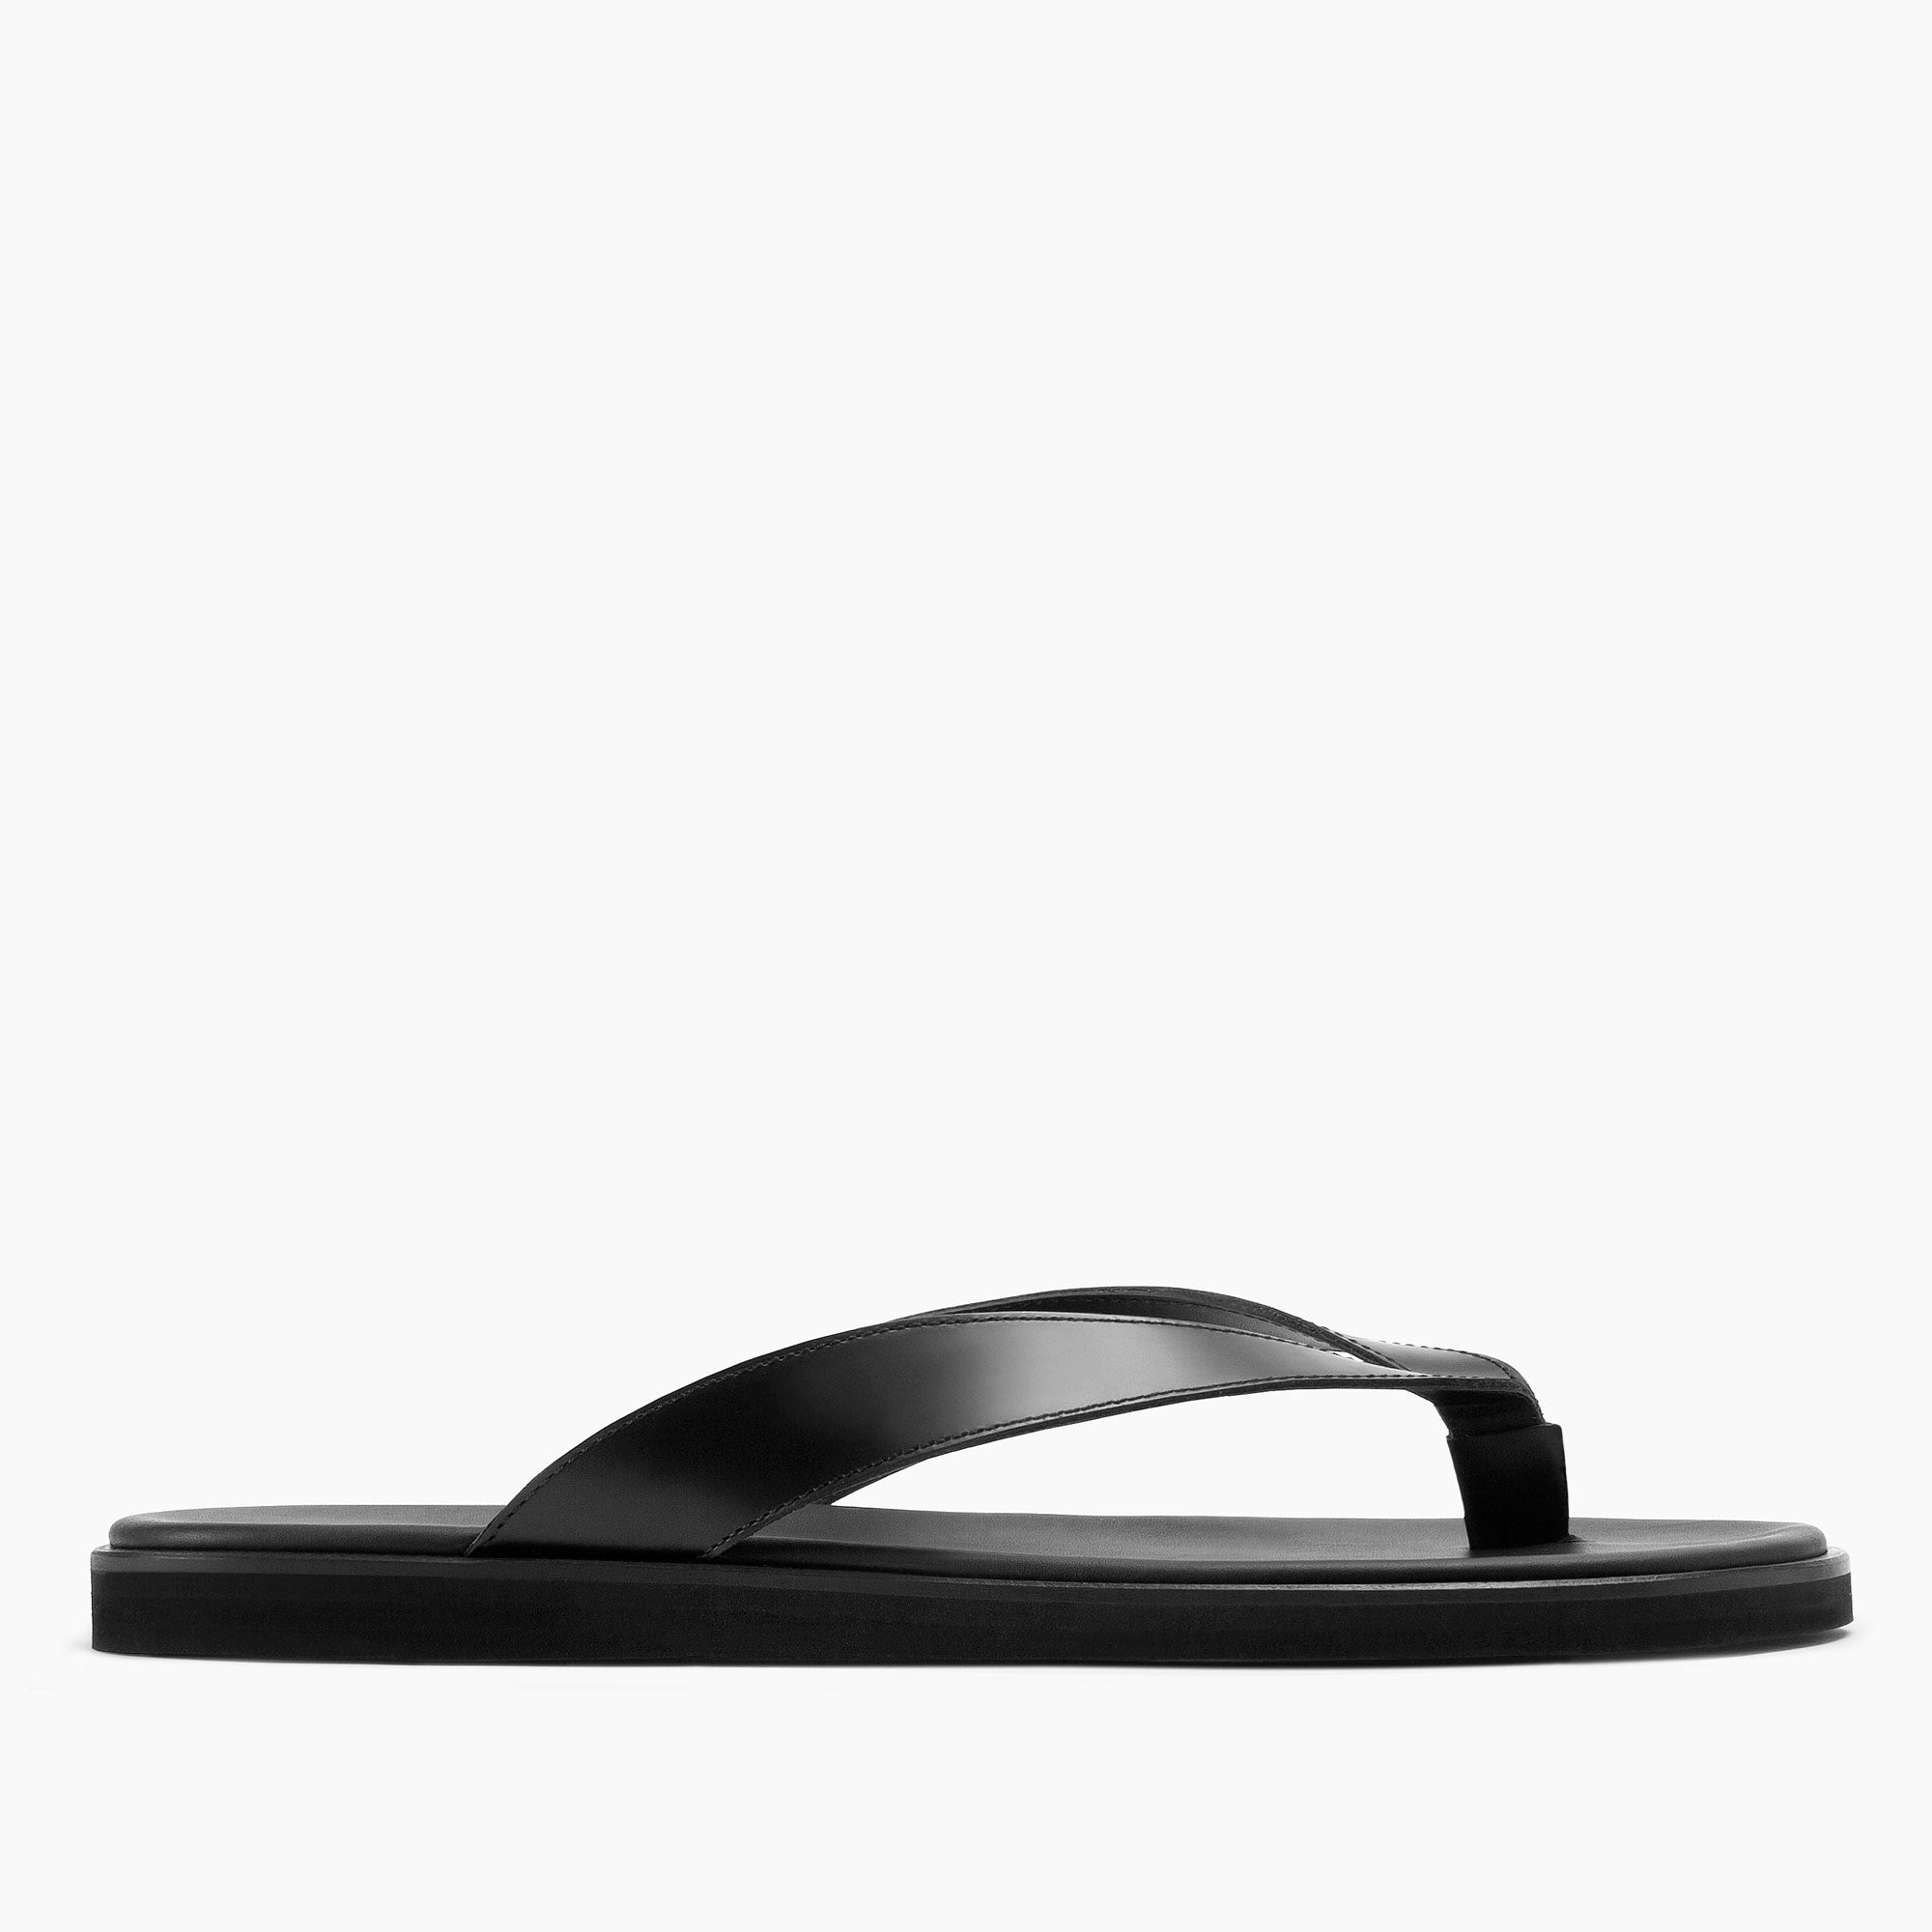 c2913f1c1 Dumont Leather Thong Sandal – WANT Apothecary EU